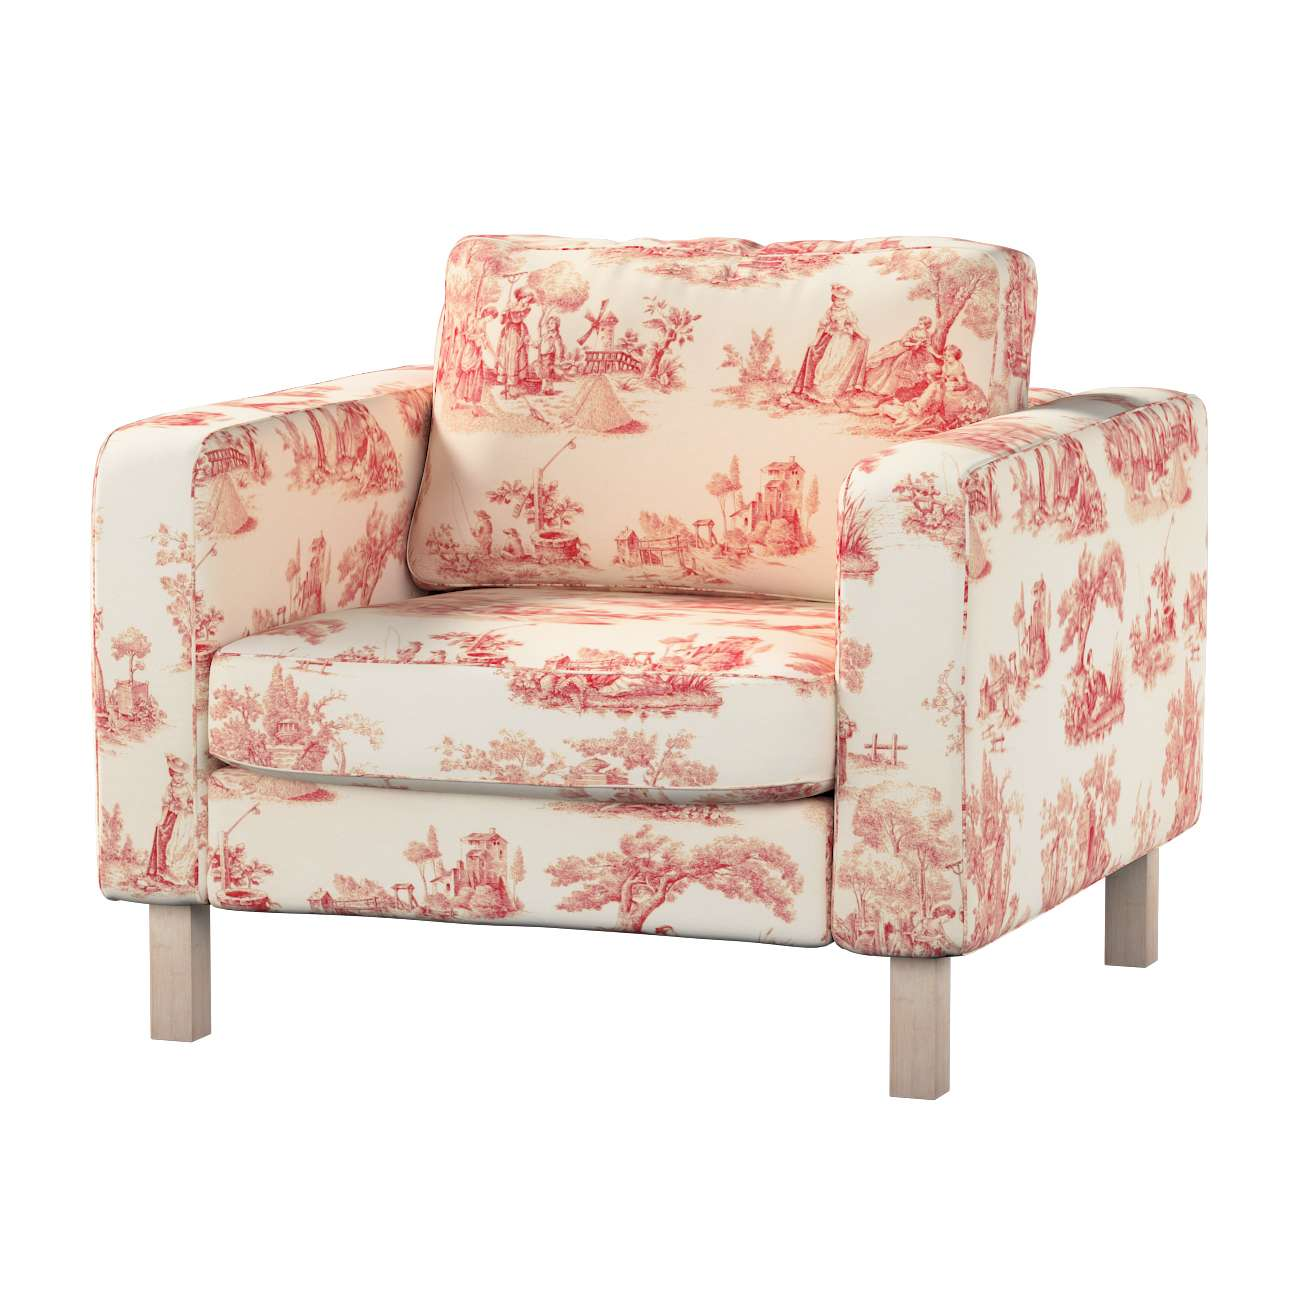 Karlstad armchair cover Karlstad armchair cover in collection Avinon, fabric: 132-15